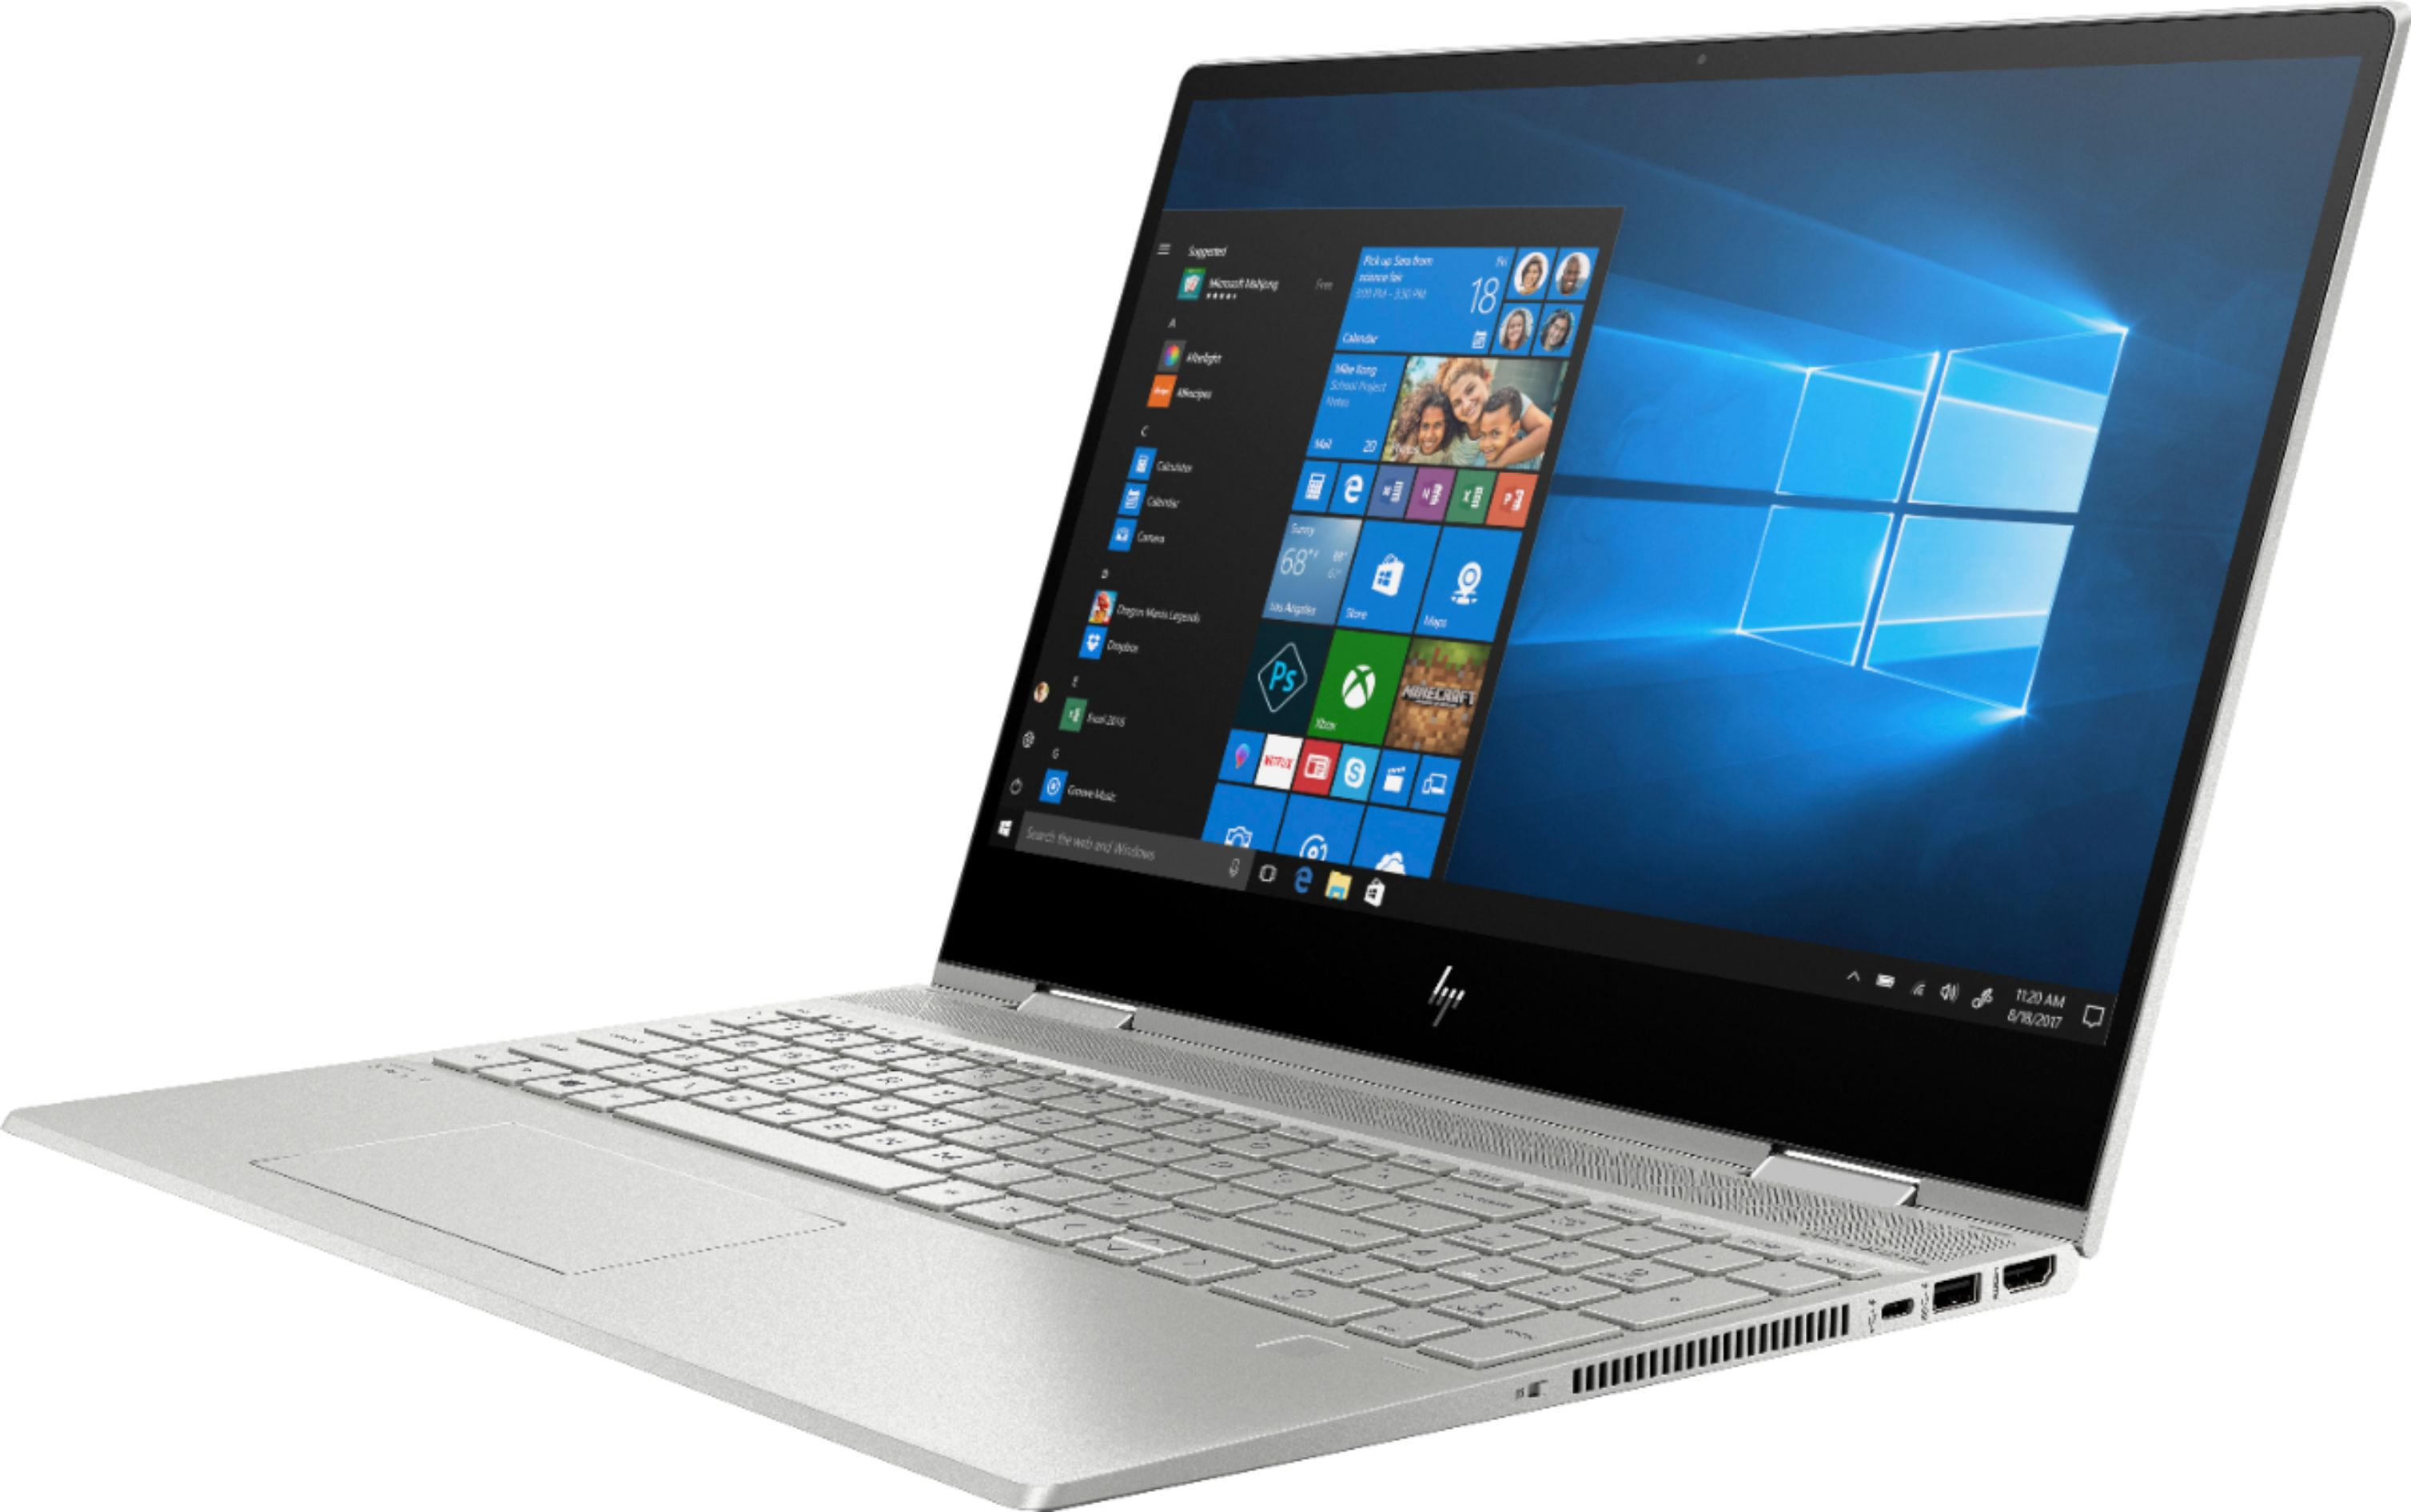 """Left Zoom. HP - ENVY x360 2-in-1 15.6"""" Touch-Screen Laptop - Intel Core i5 - 8GB Memory - 256GB Solid State Drive - Natural Silver, Sandblasted Anodized Finish."""